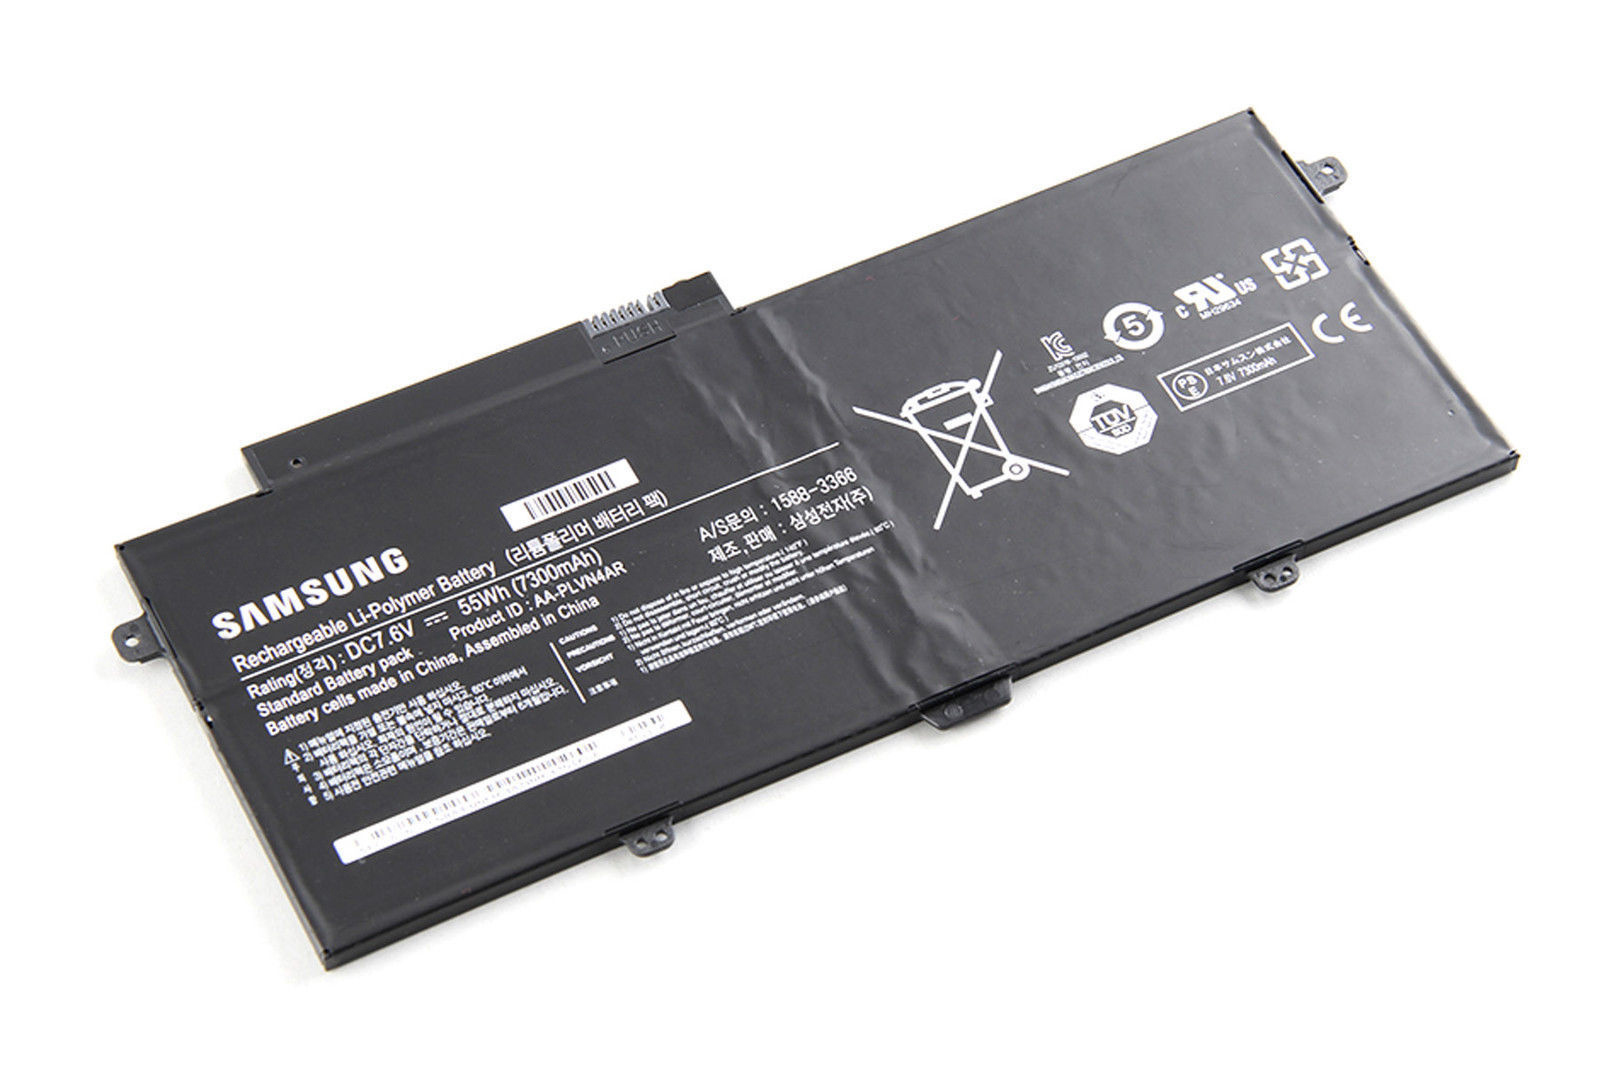 7.6V 55Wh 7300mAh Samsung NP940X3G-K03 NP940X3G-K03AT Battery